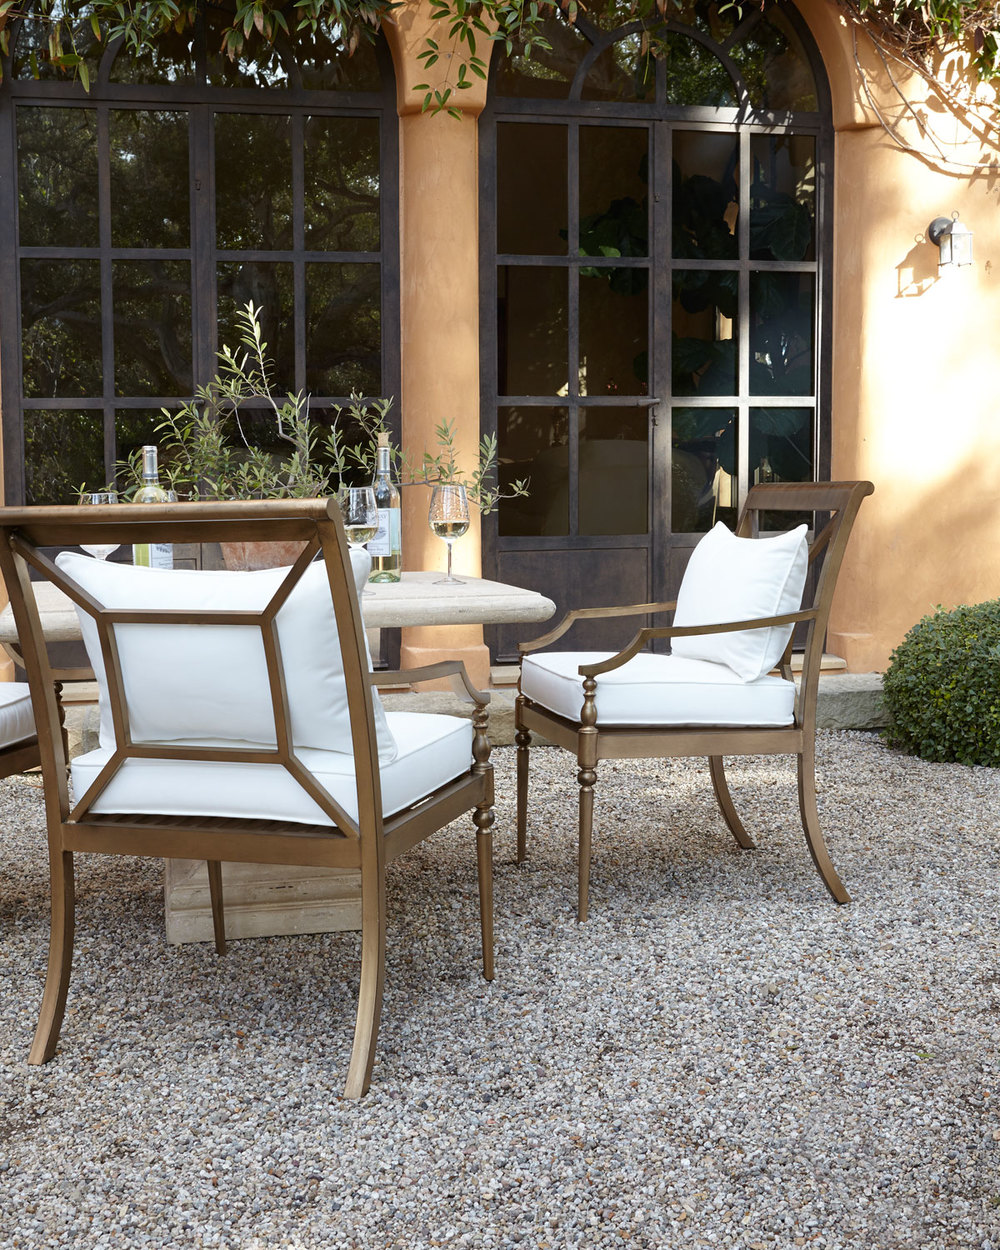 Outdoor glamour springtime patio inspiration franki for Outdoor patio inspiration